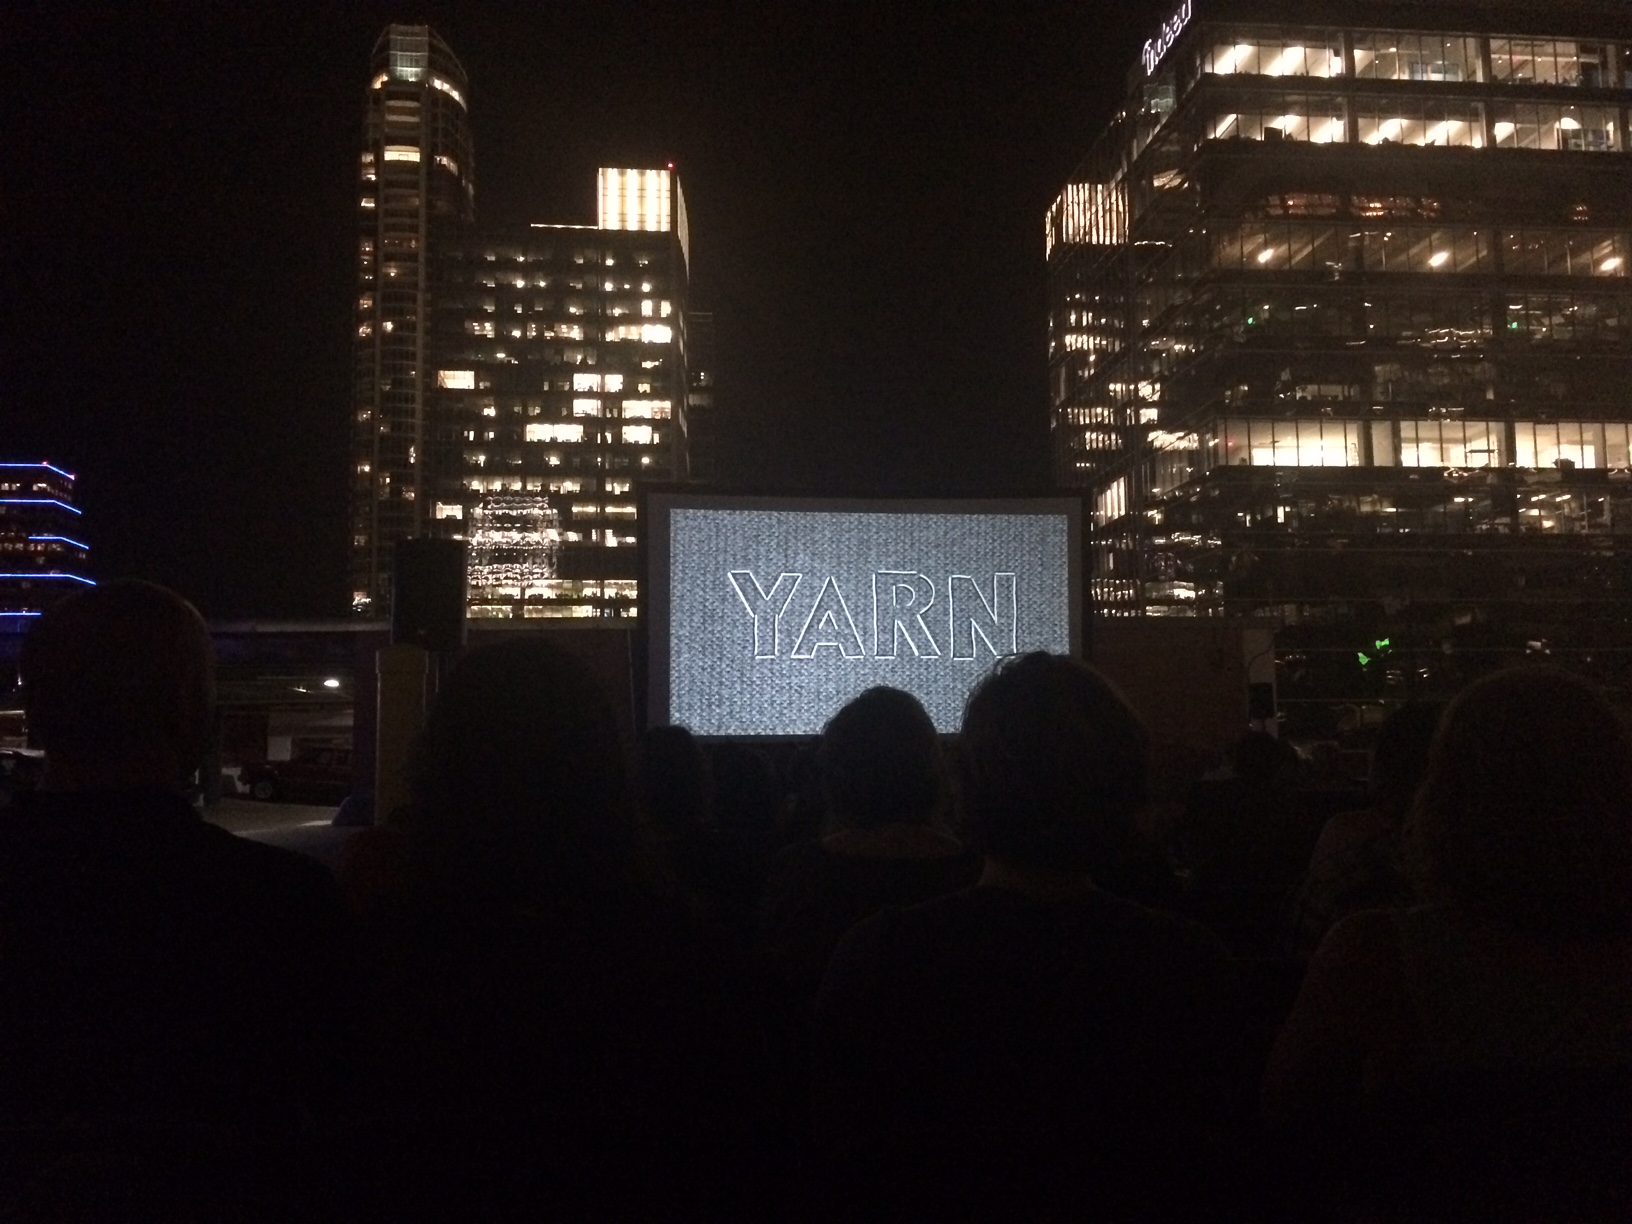 A beautiful night to watch a movie on a rooftop in Austin.